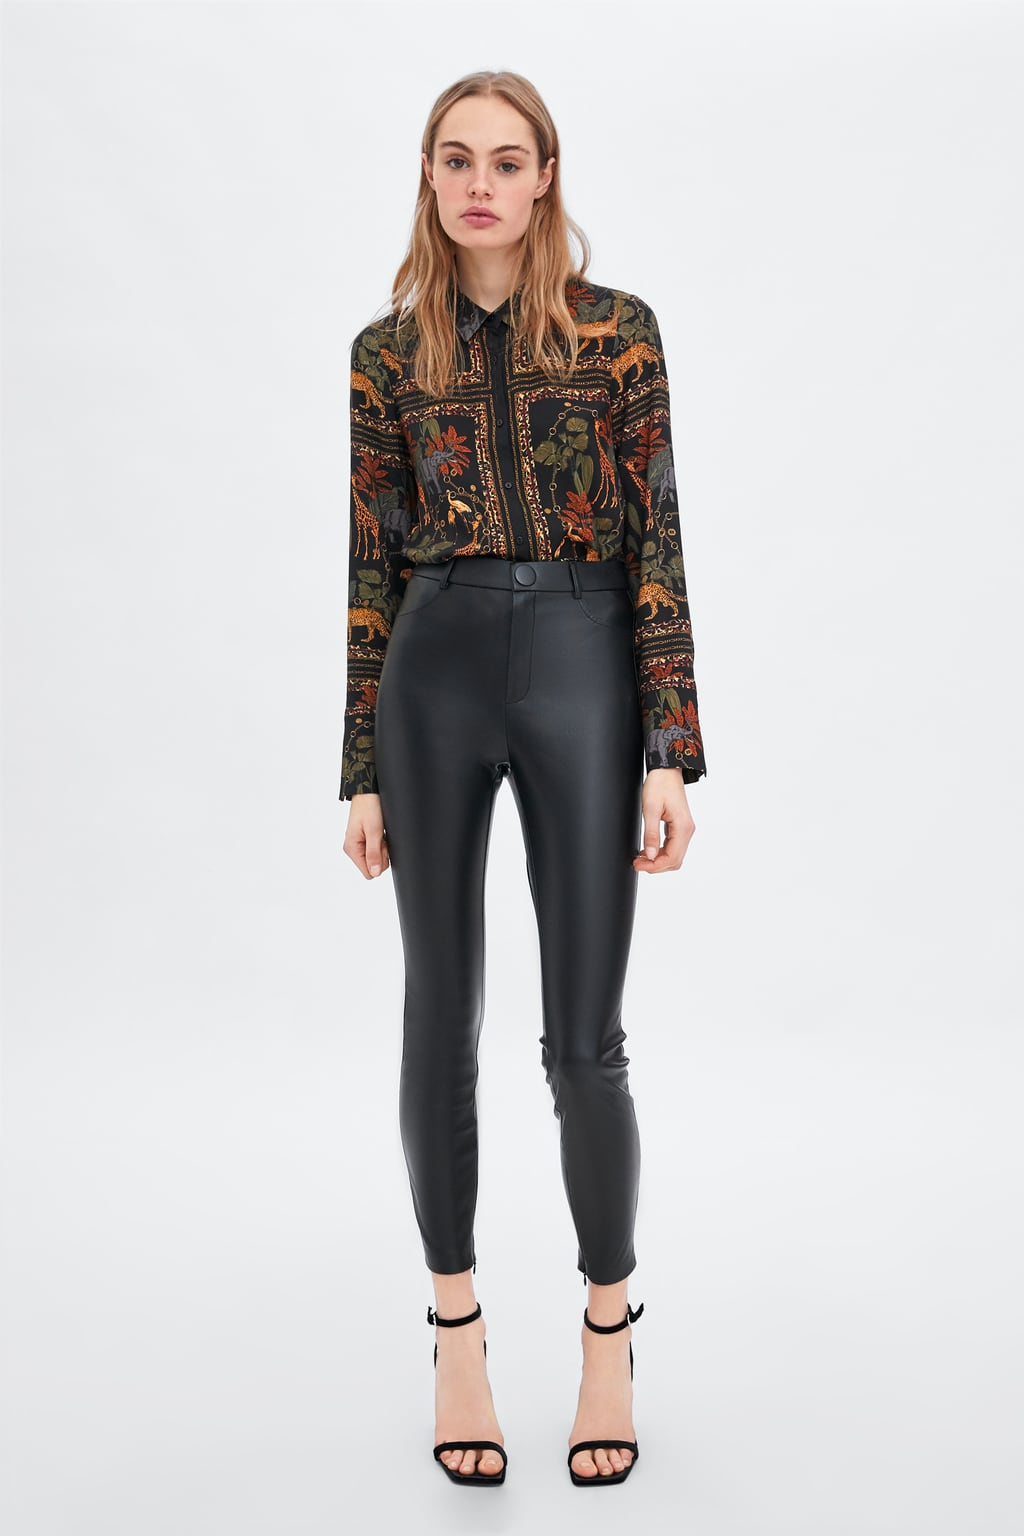 Faux Leather Leggings  New Intrf New Collection by Zara